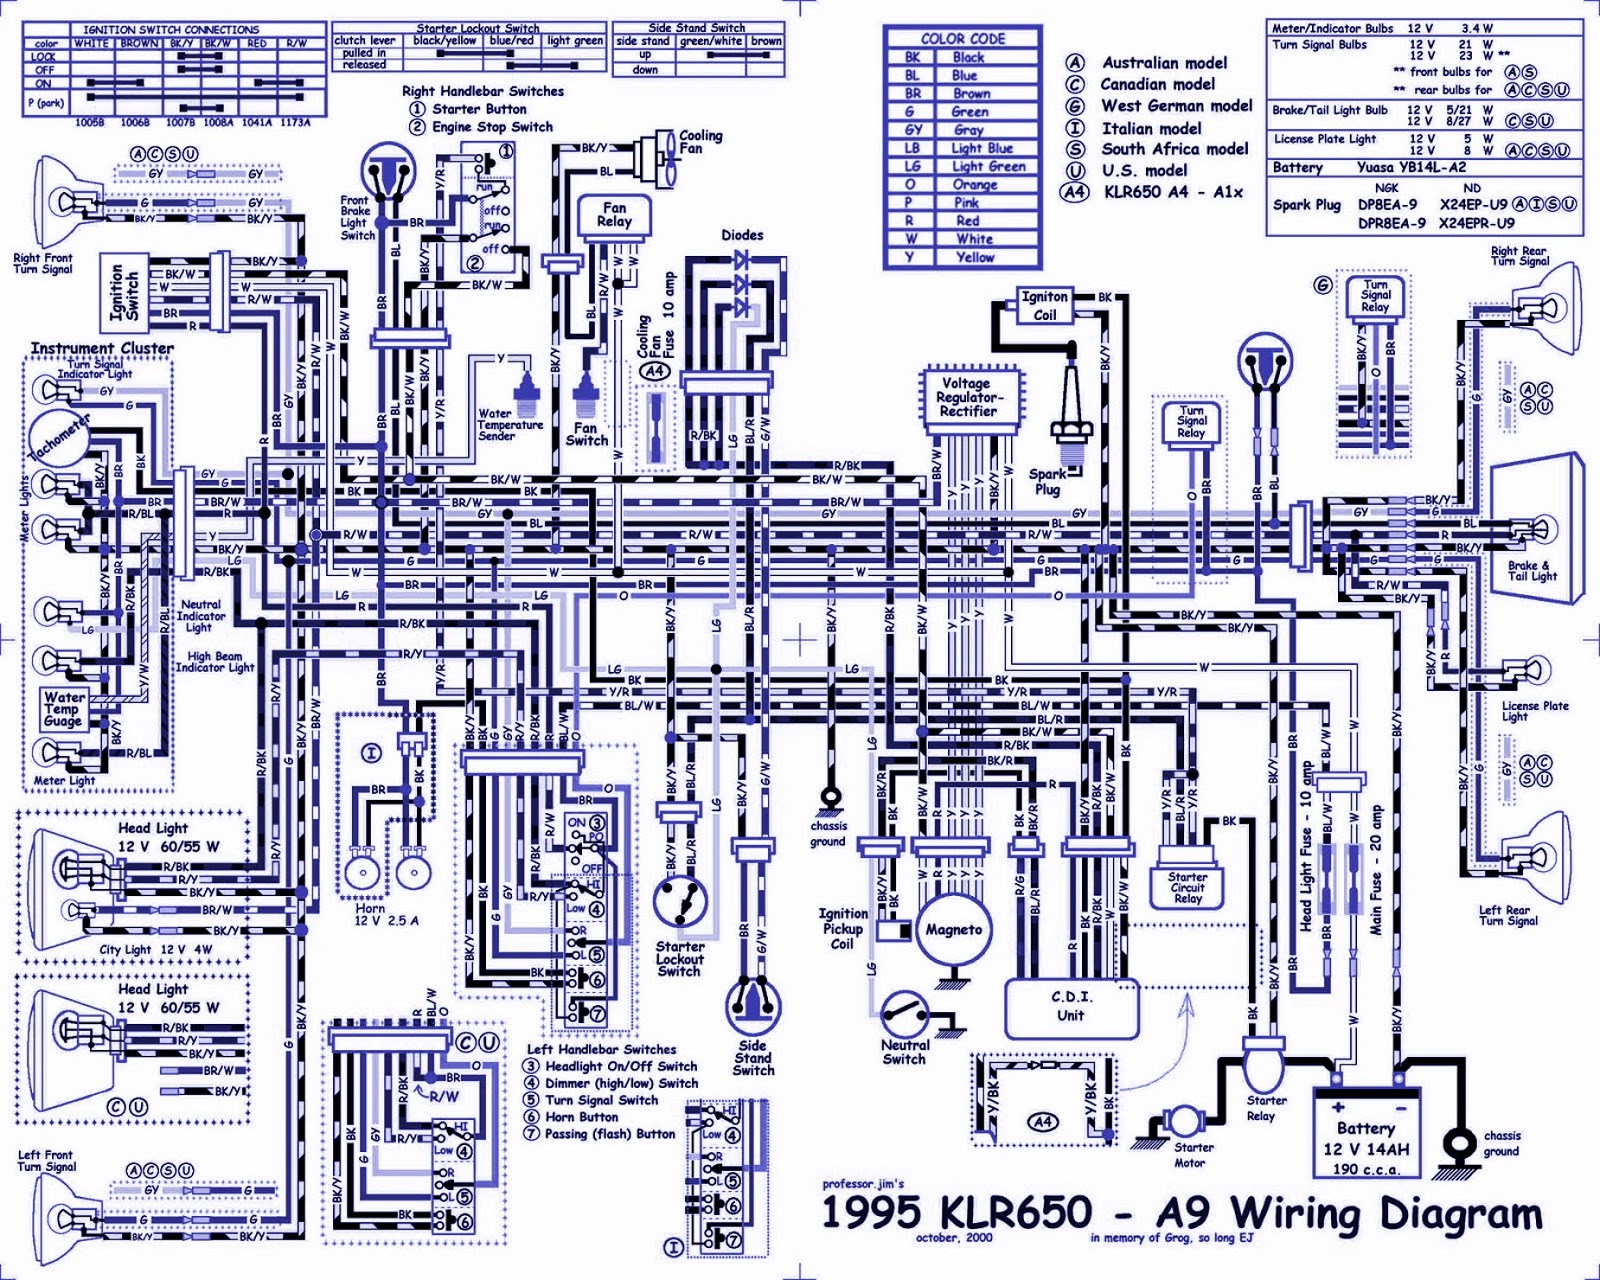 saab 9 3 headlight wiring diagram appealing saab 9 5 wiring diagram pdf contemporary  [ 1600 x 1280 Pixel ]